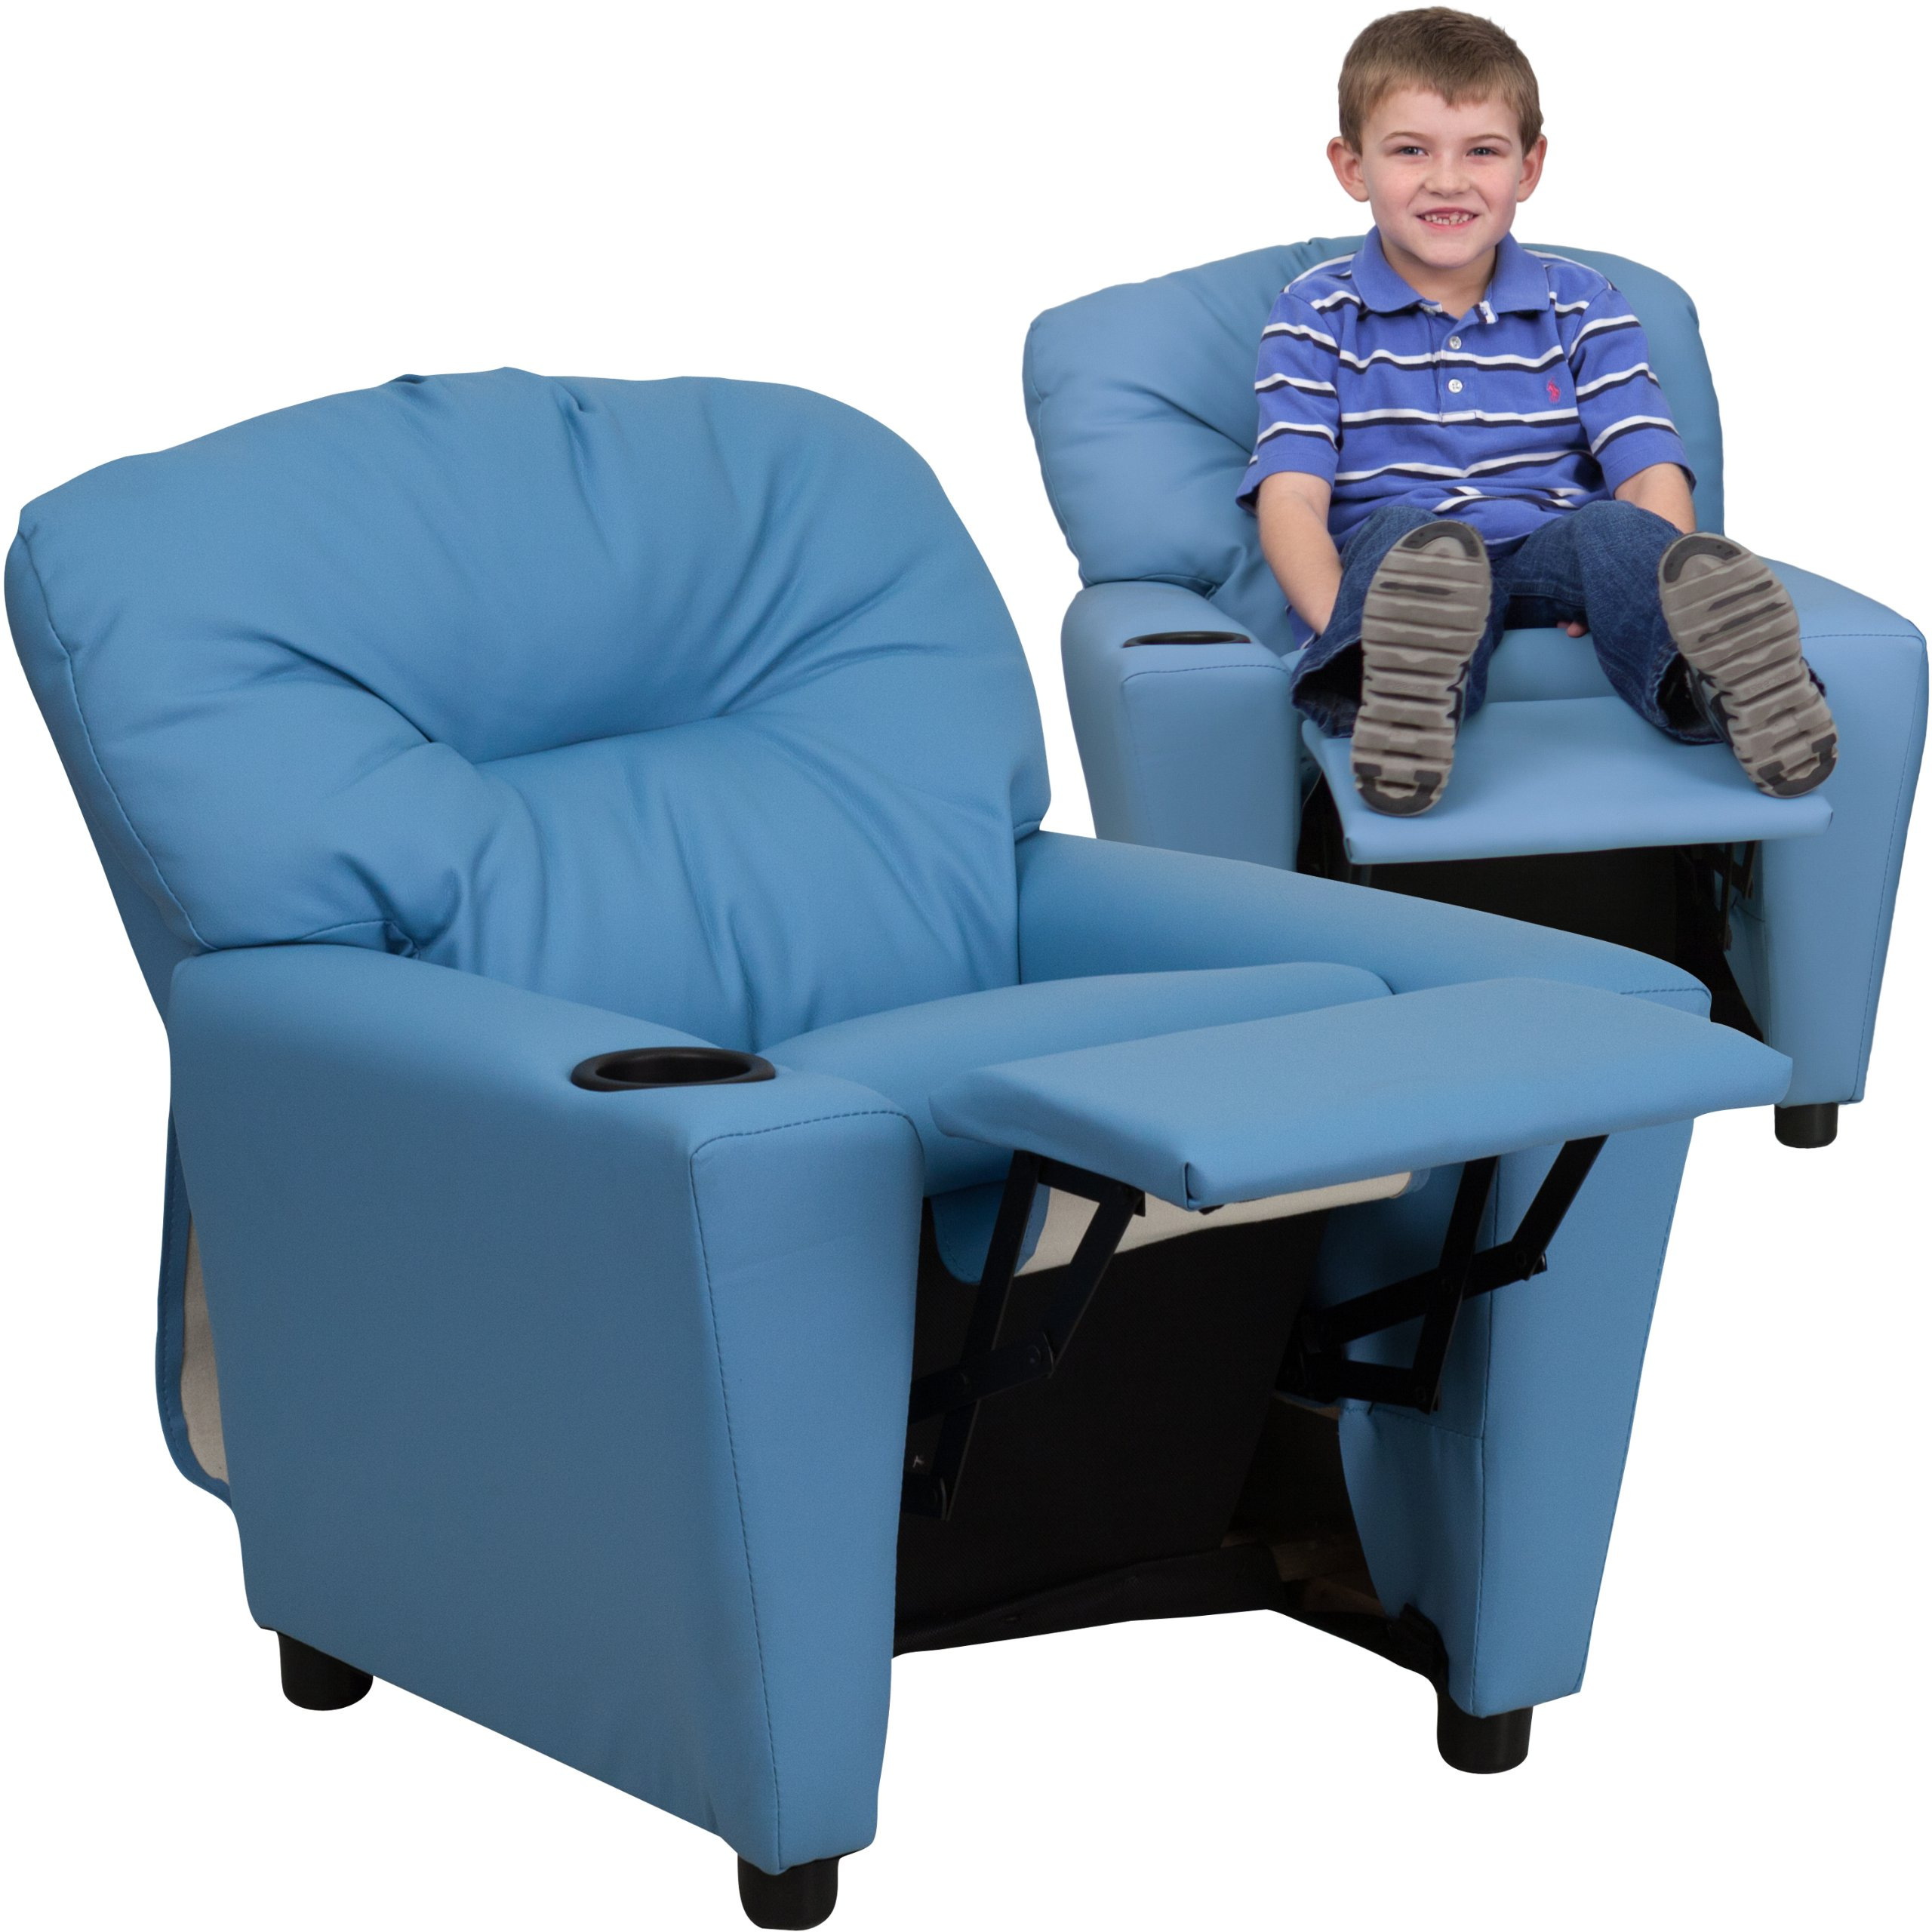 Winston Direct Kids' Series Contemporary Light Blue Vinyl Recliner with Cup Holder